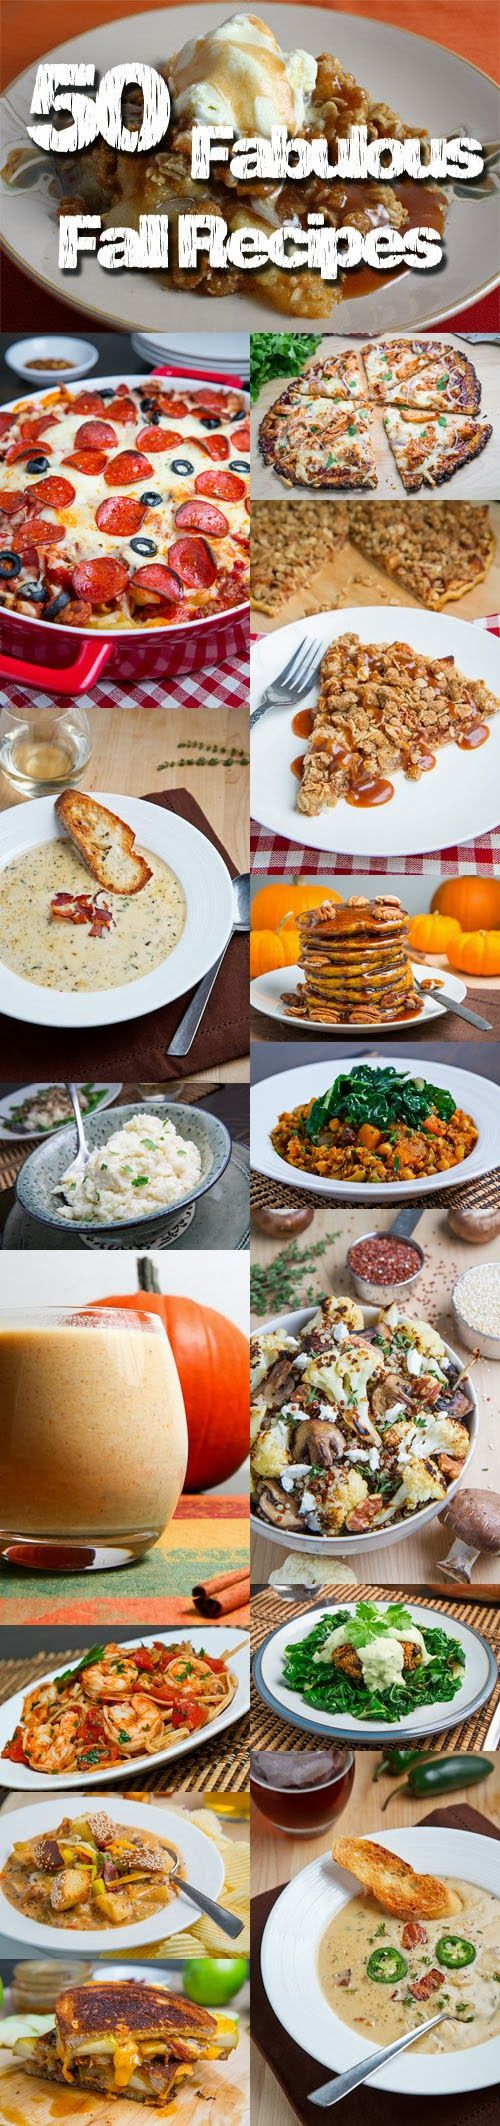 50 Fabulous Fall Recipes... Cooling weather  opens up new opportunities like using the oven for things like casseroles and roasts which may have been taboo during hot summer days. Of course as the weather gets even cooler soups and stews make a more prominent appearance on the table! Here I have gathered up 50 of my favorite fall recipes for your inspiration and enjoyment over the coming days!